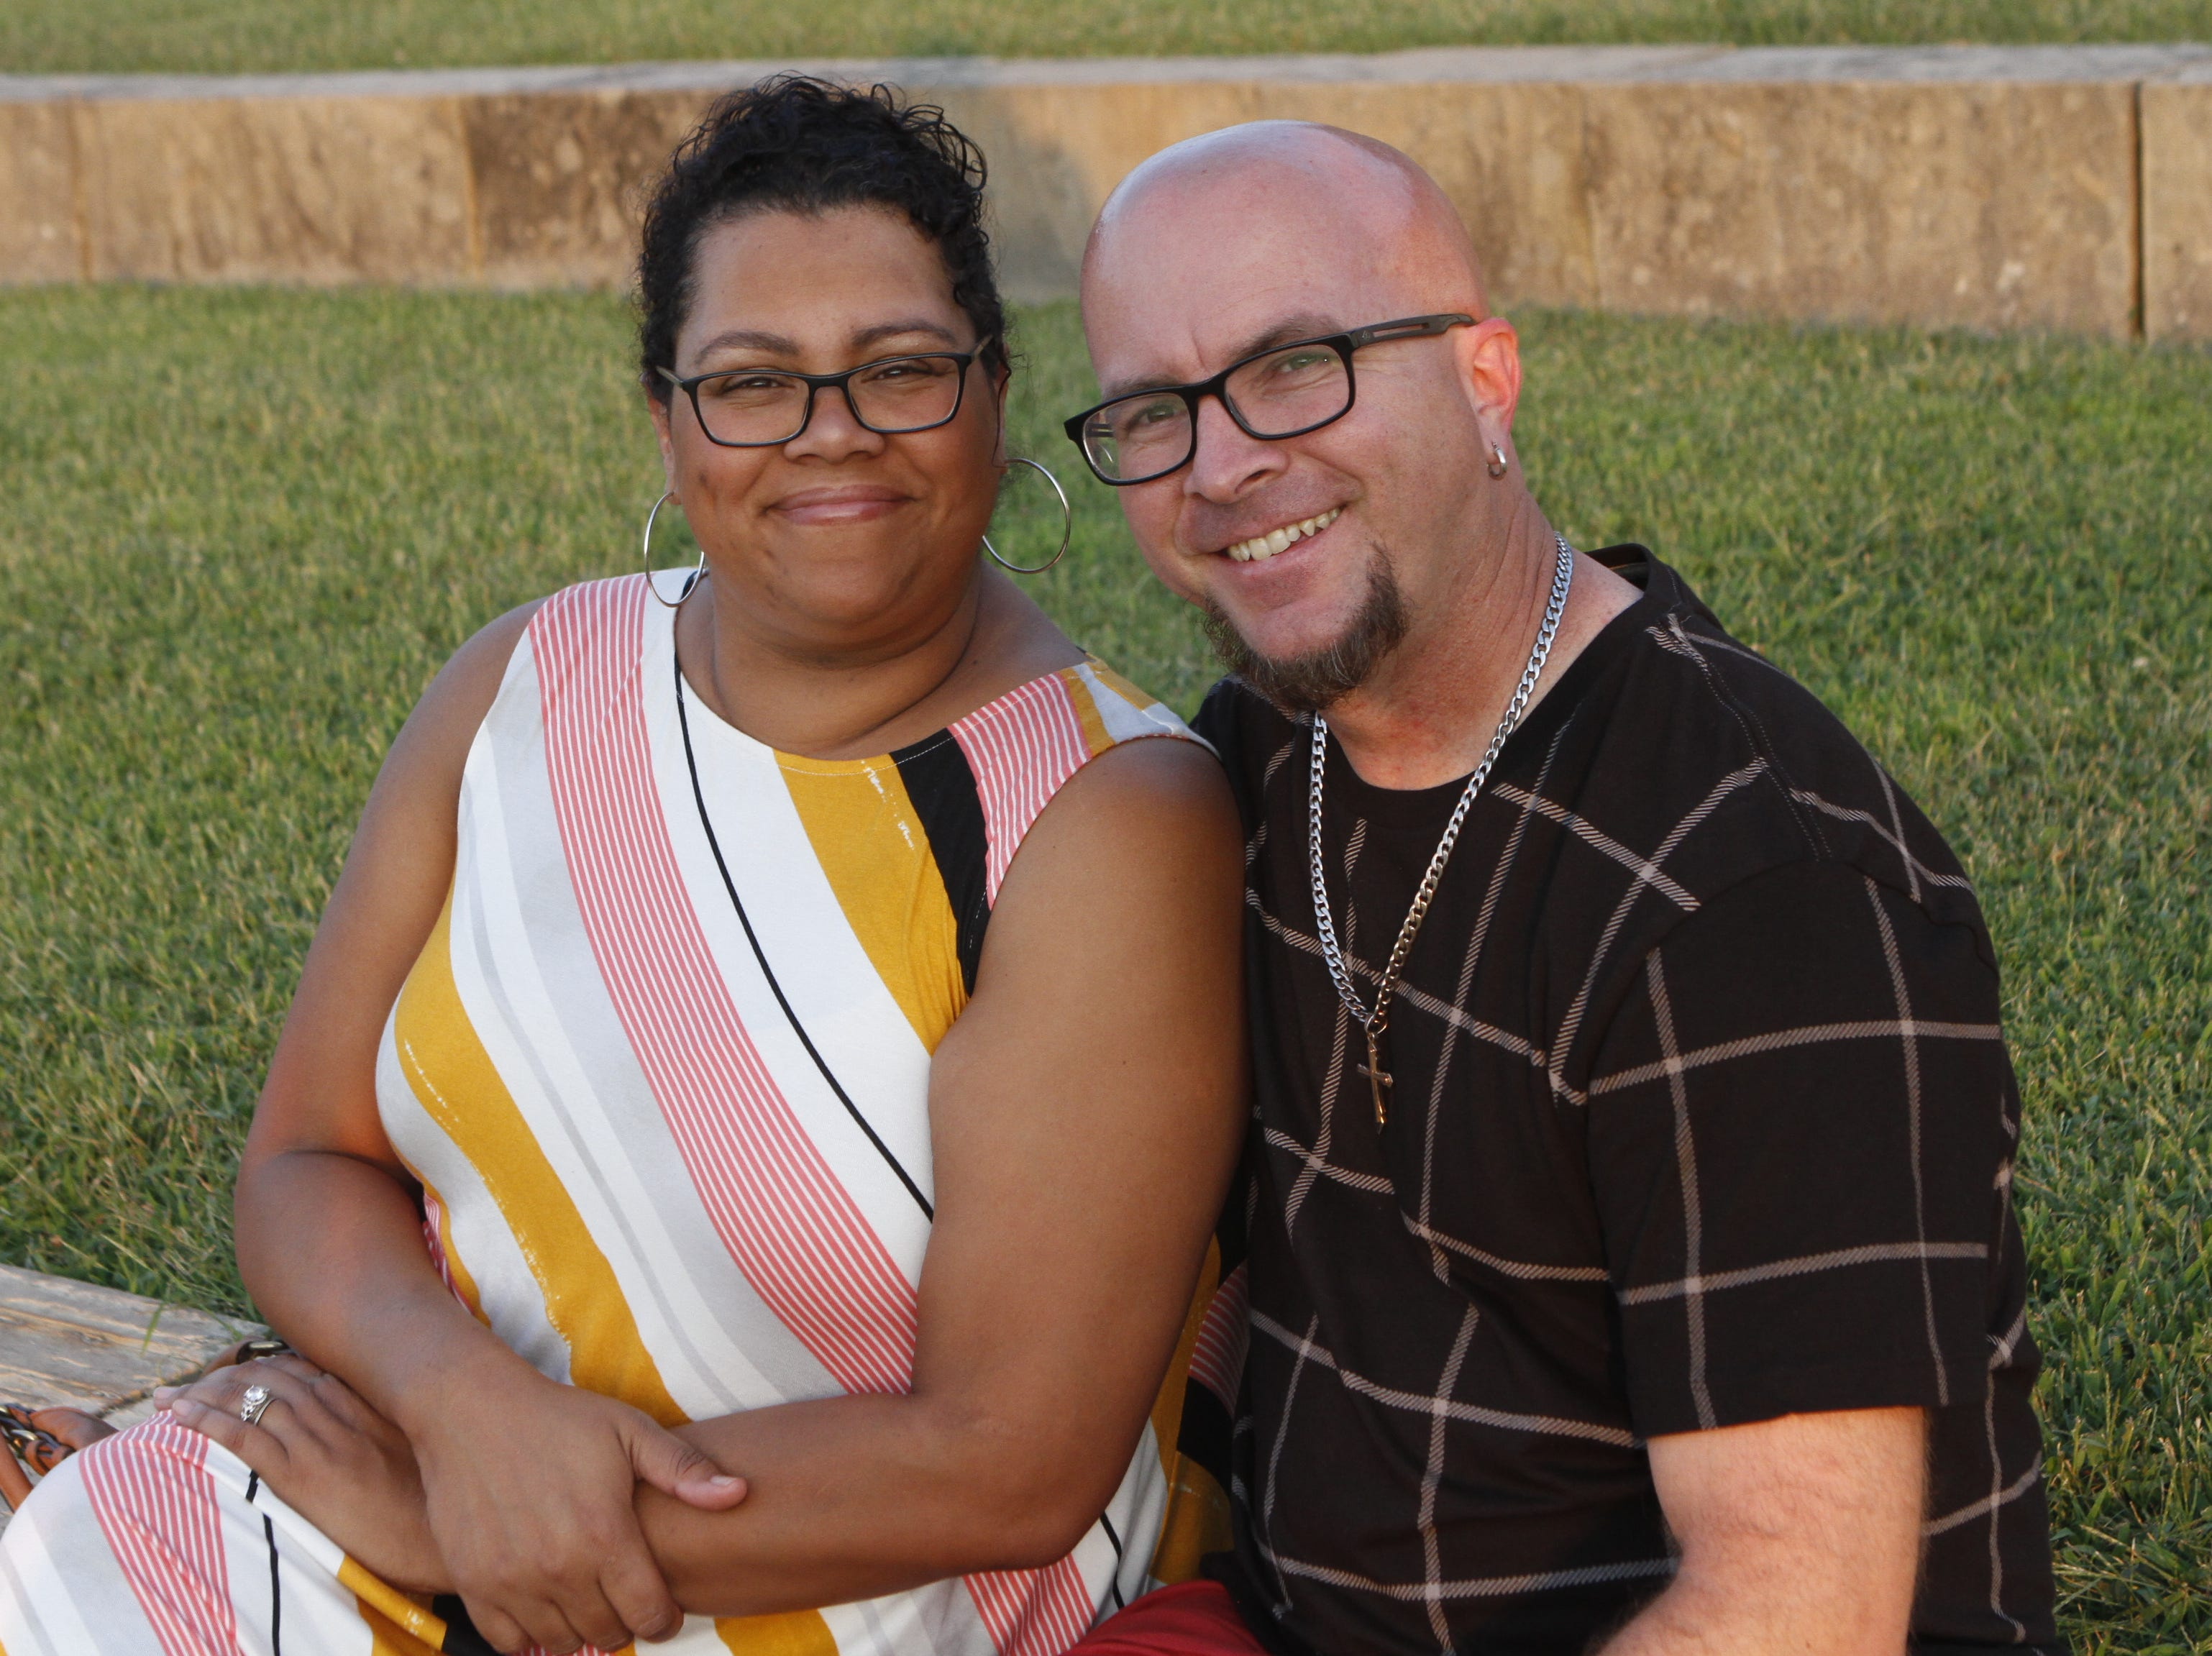 Pam and Jason Mulkey at Saturday's Road to Riverfest, a Liberty Park summer concert series event.